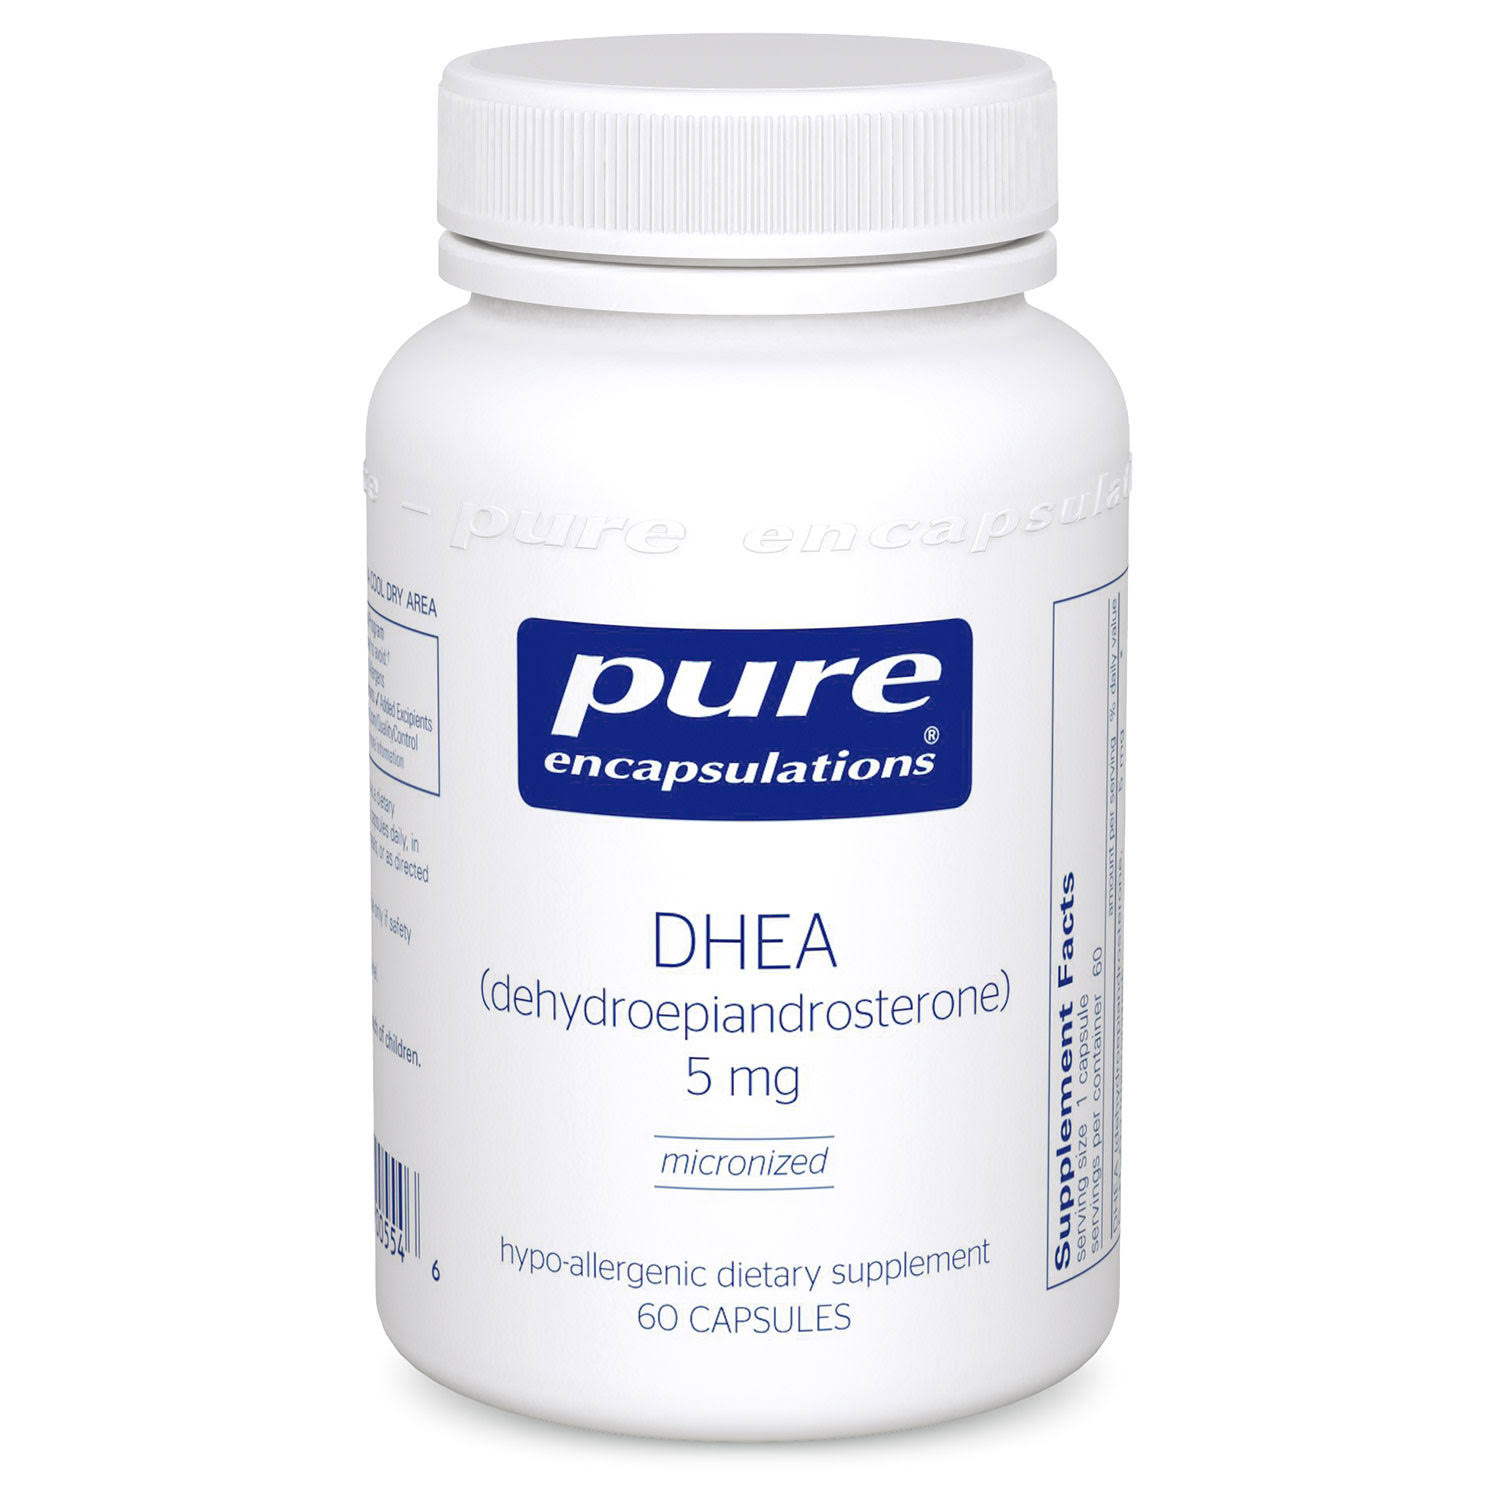 Pure Encapsulations Micronized DHEA Supplement - 5mg, 60 Capsules